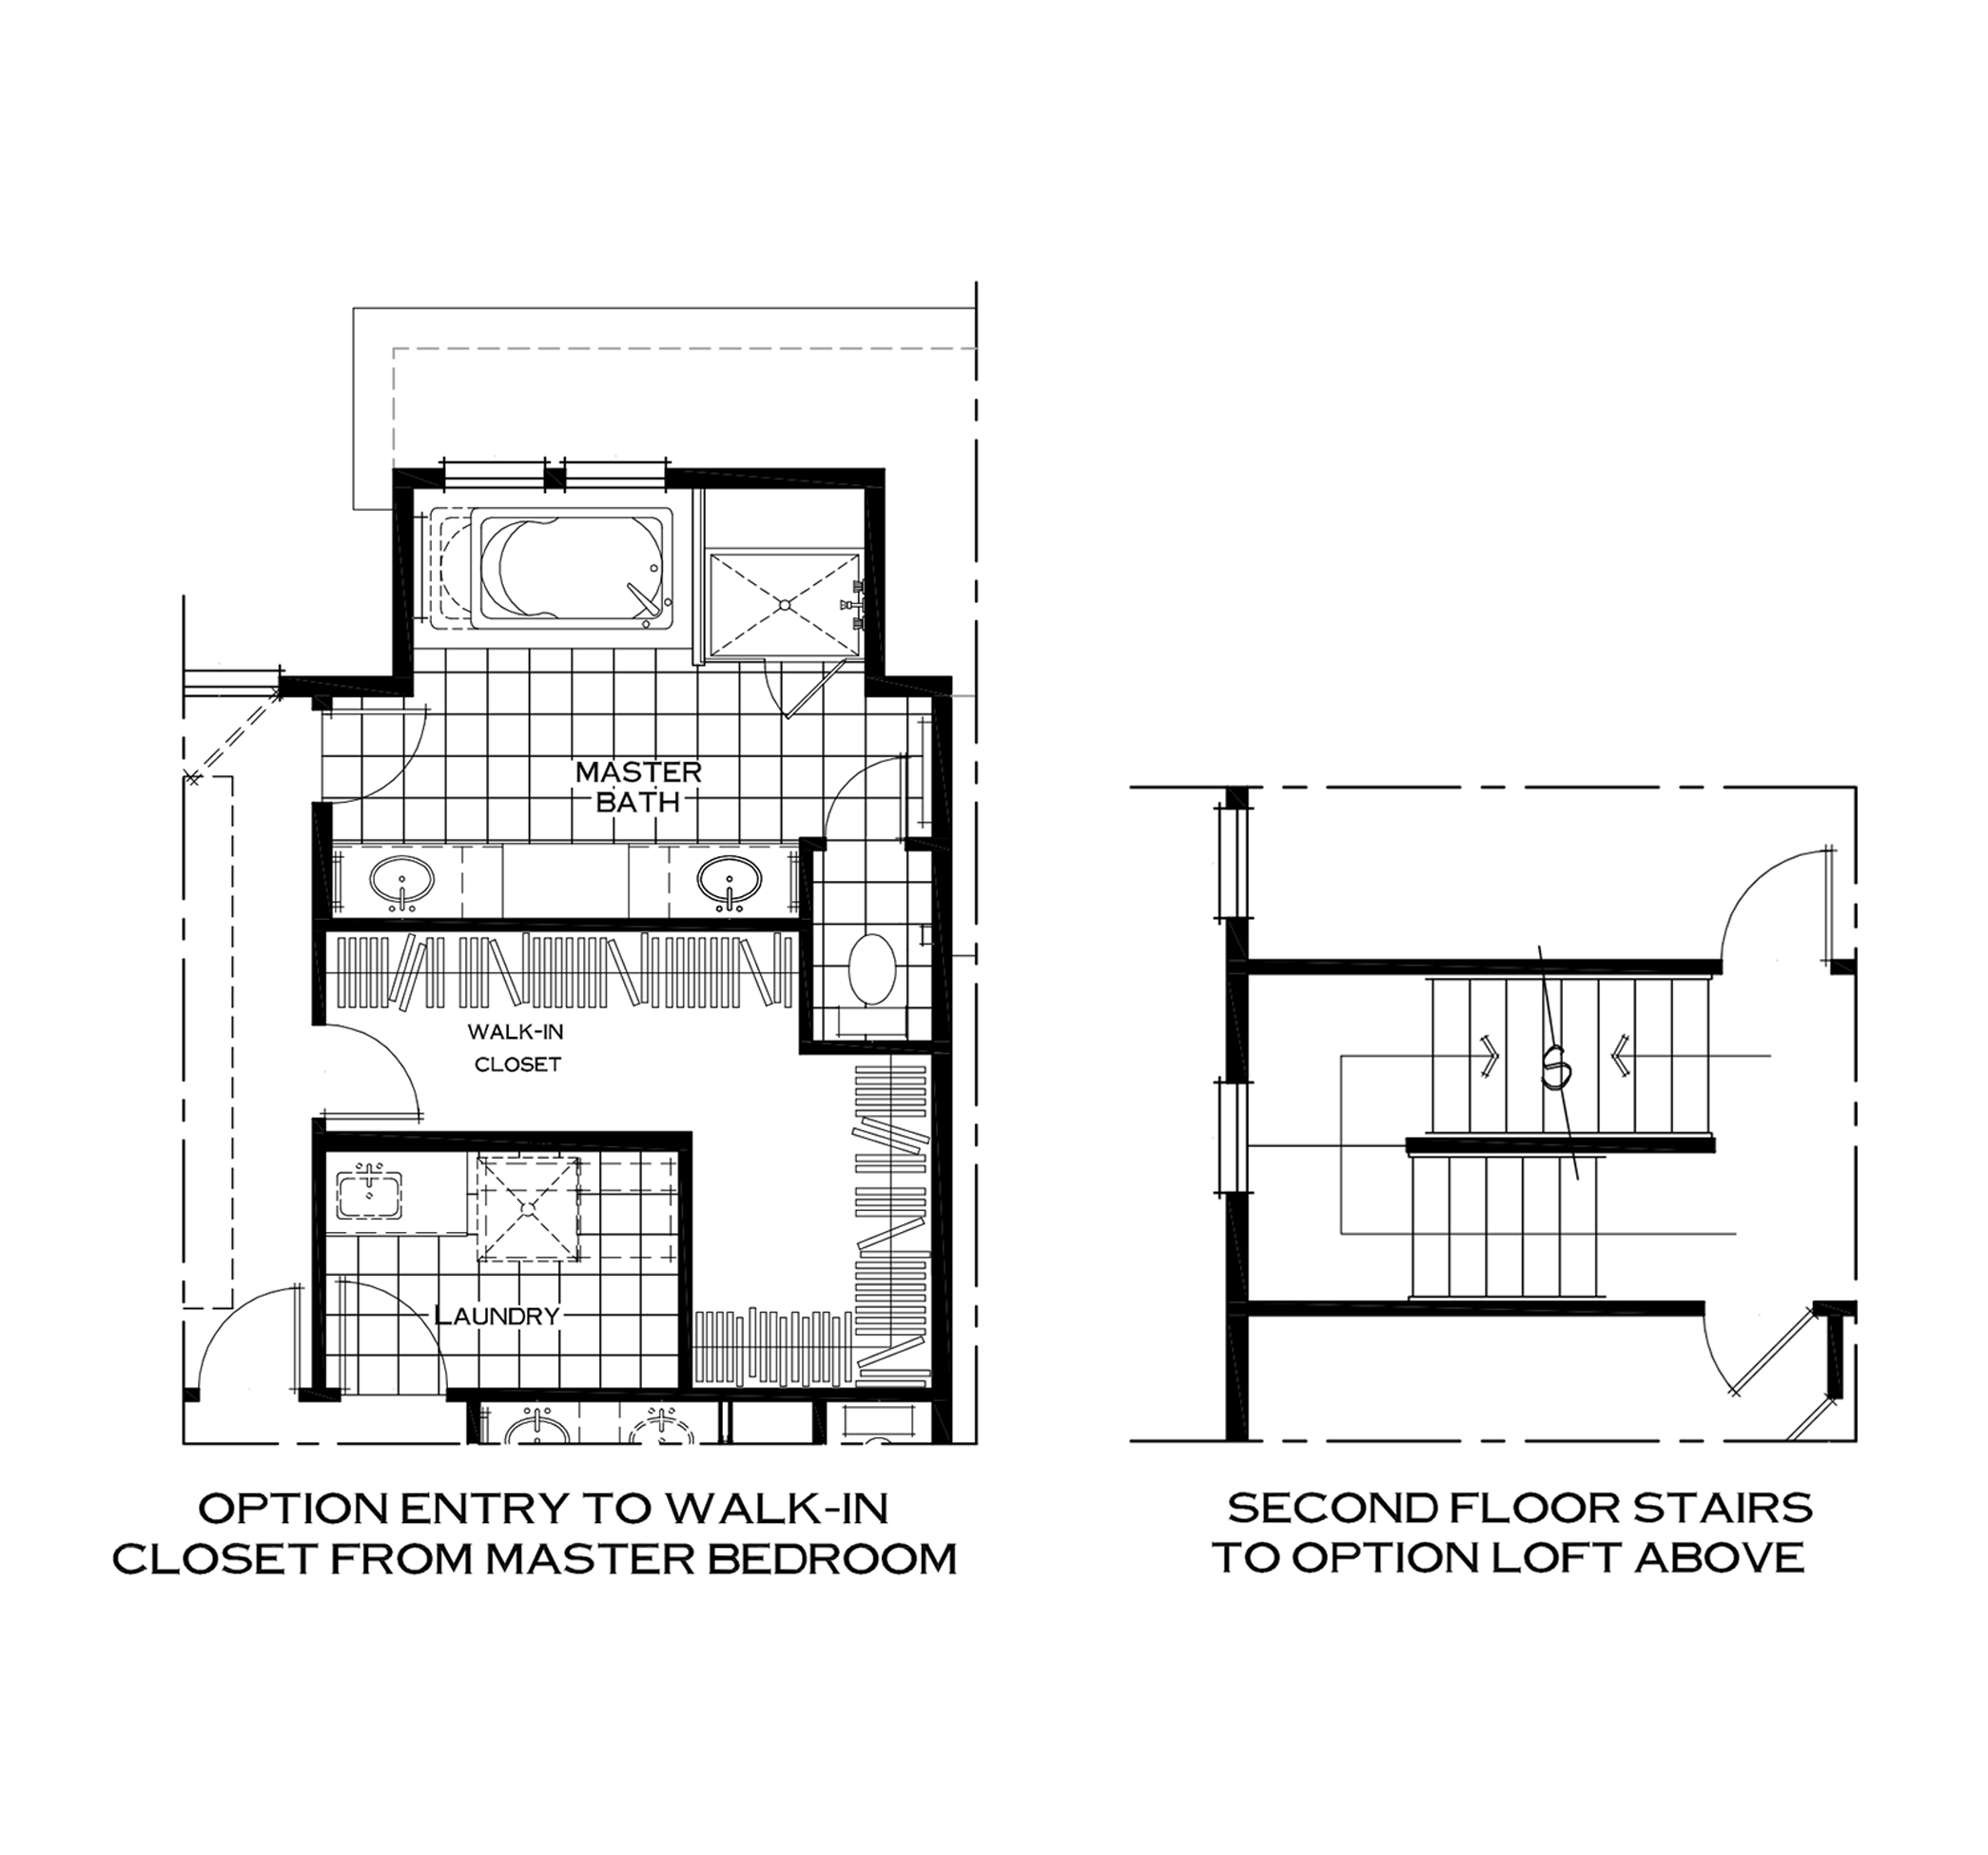 Additional Second Floor Options